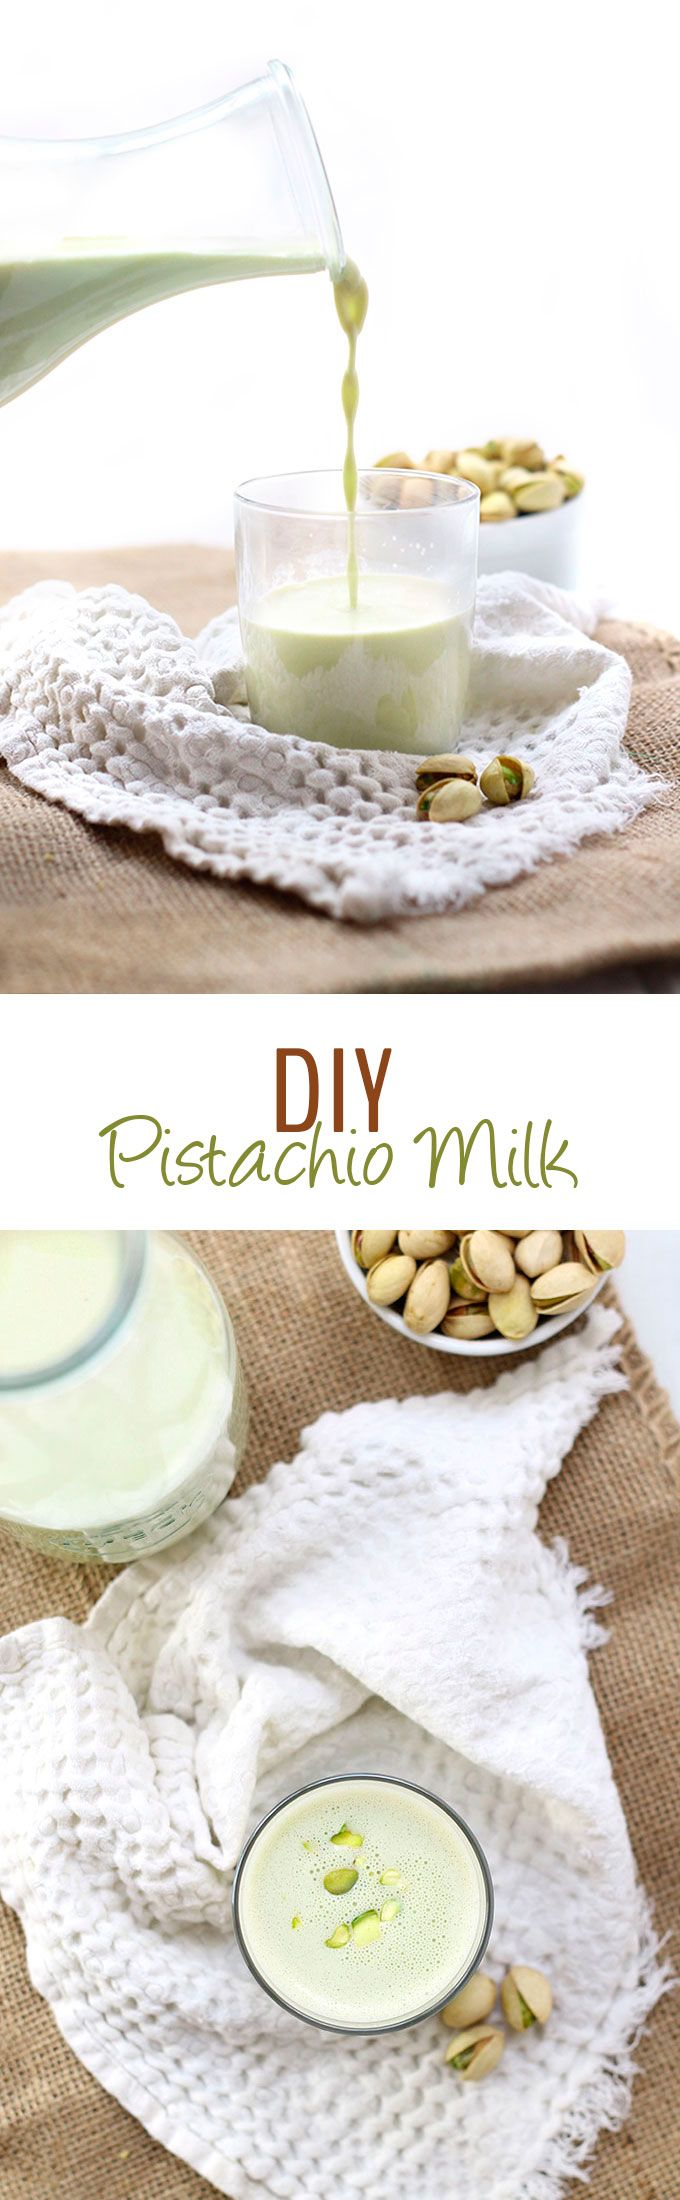 Change up your usual almond milk with this easy DIY Pistachio Milk recipe! Just soak, blend and strain to pistachio milk perfection. I love this recipe with a latte!